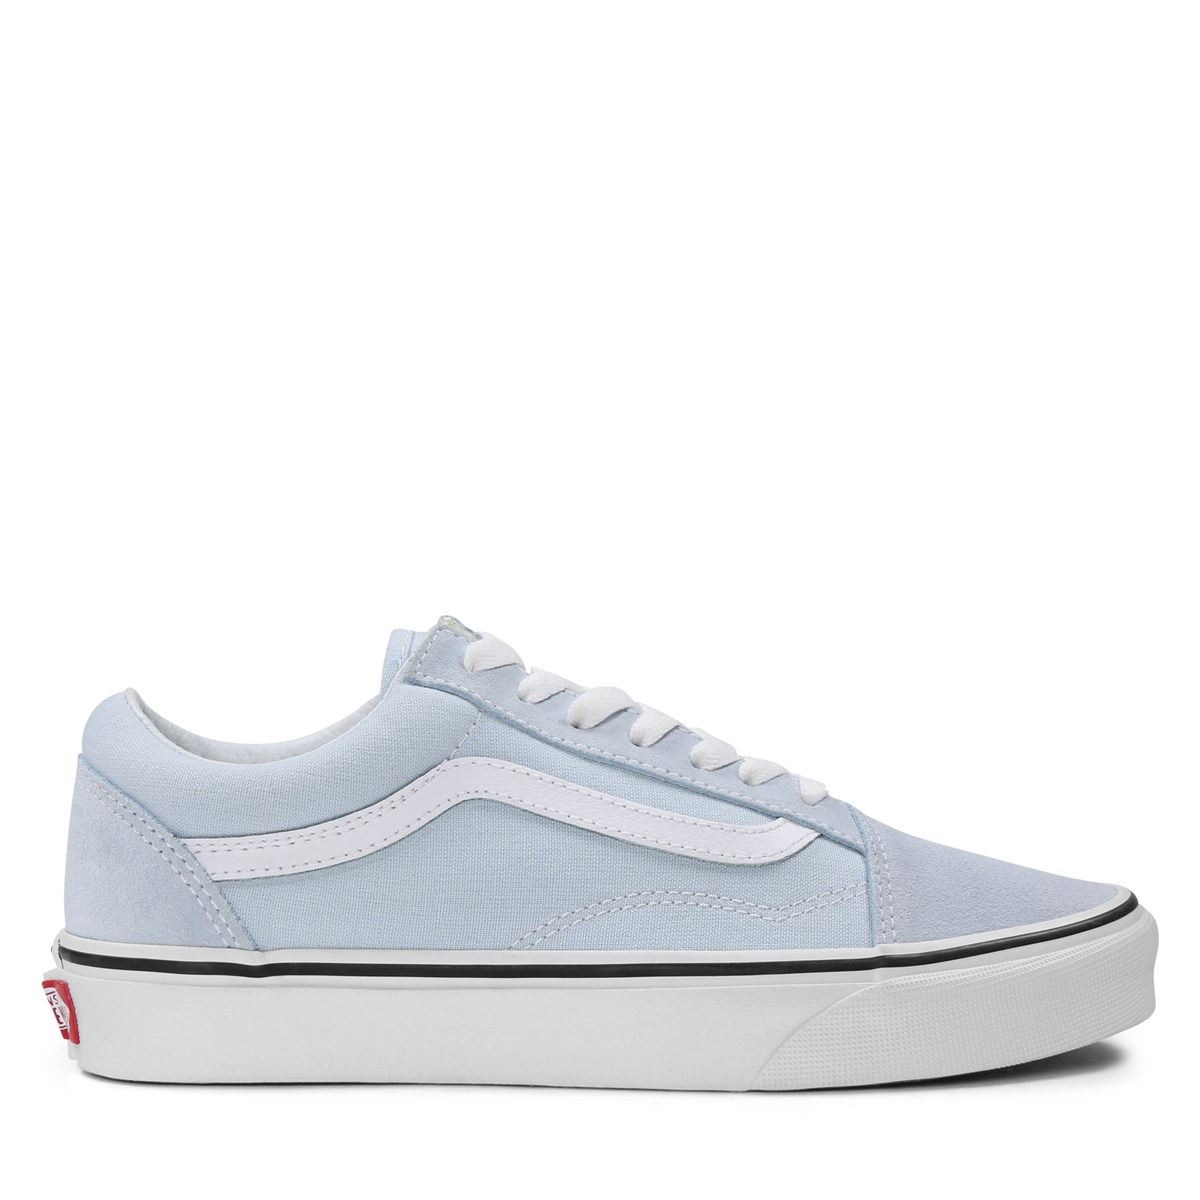 60c7c5e72bd4f7 Women s Old Skool Baby Blue Sneaker. Previous. default view ...